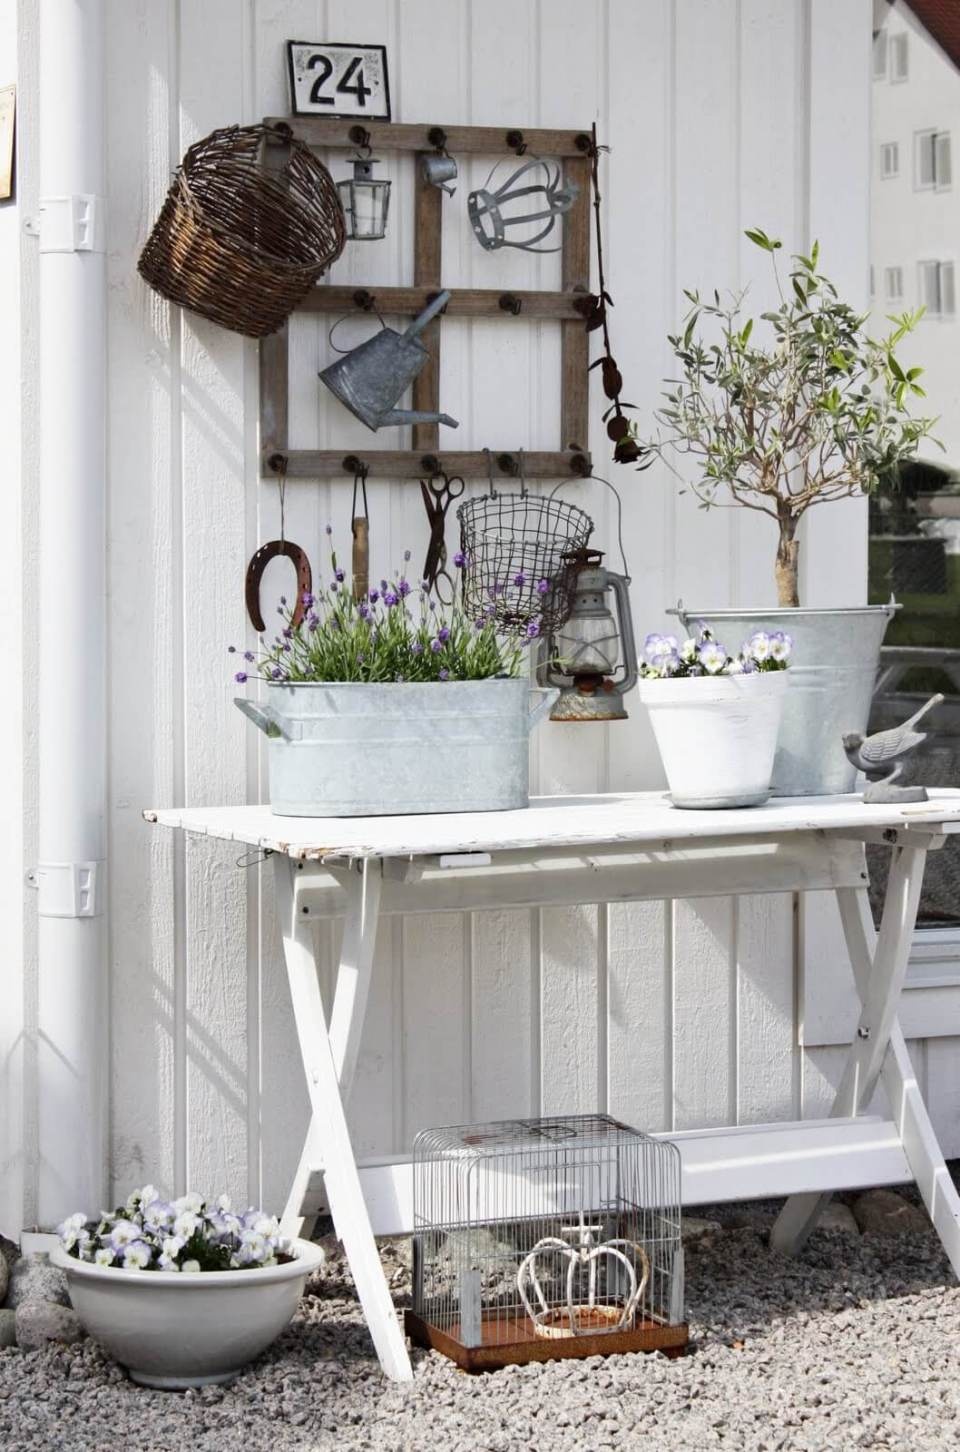 Vintage Garden Decor Ideas: Garden Display Table with Vintage Metal Touches